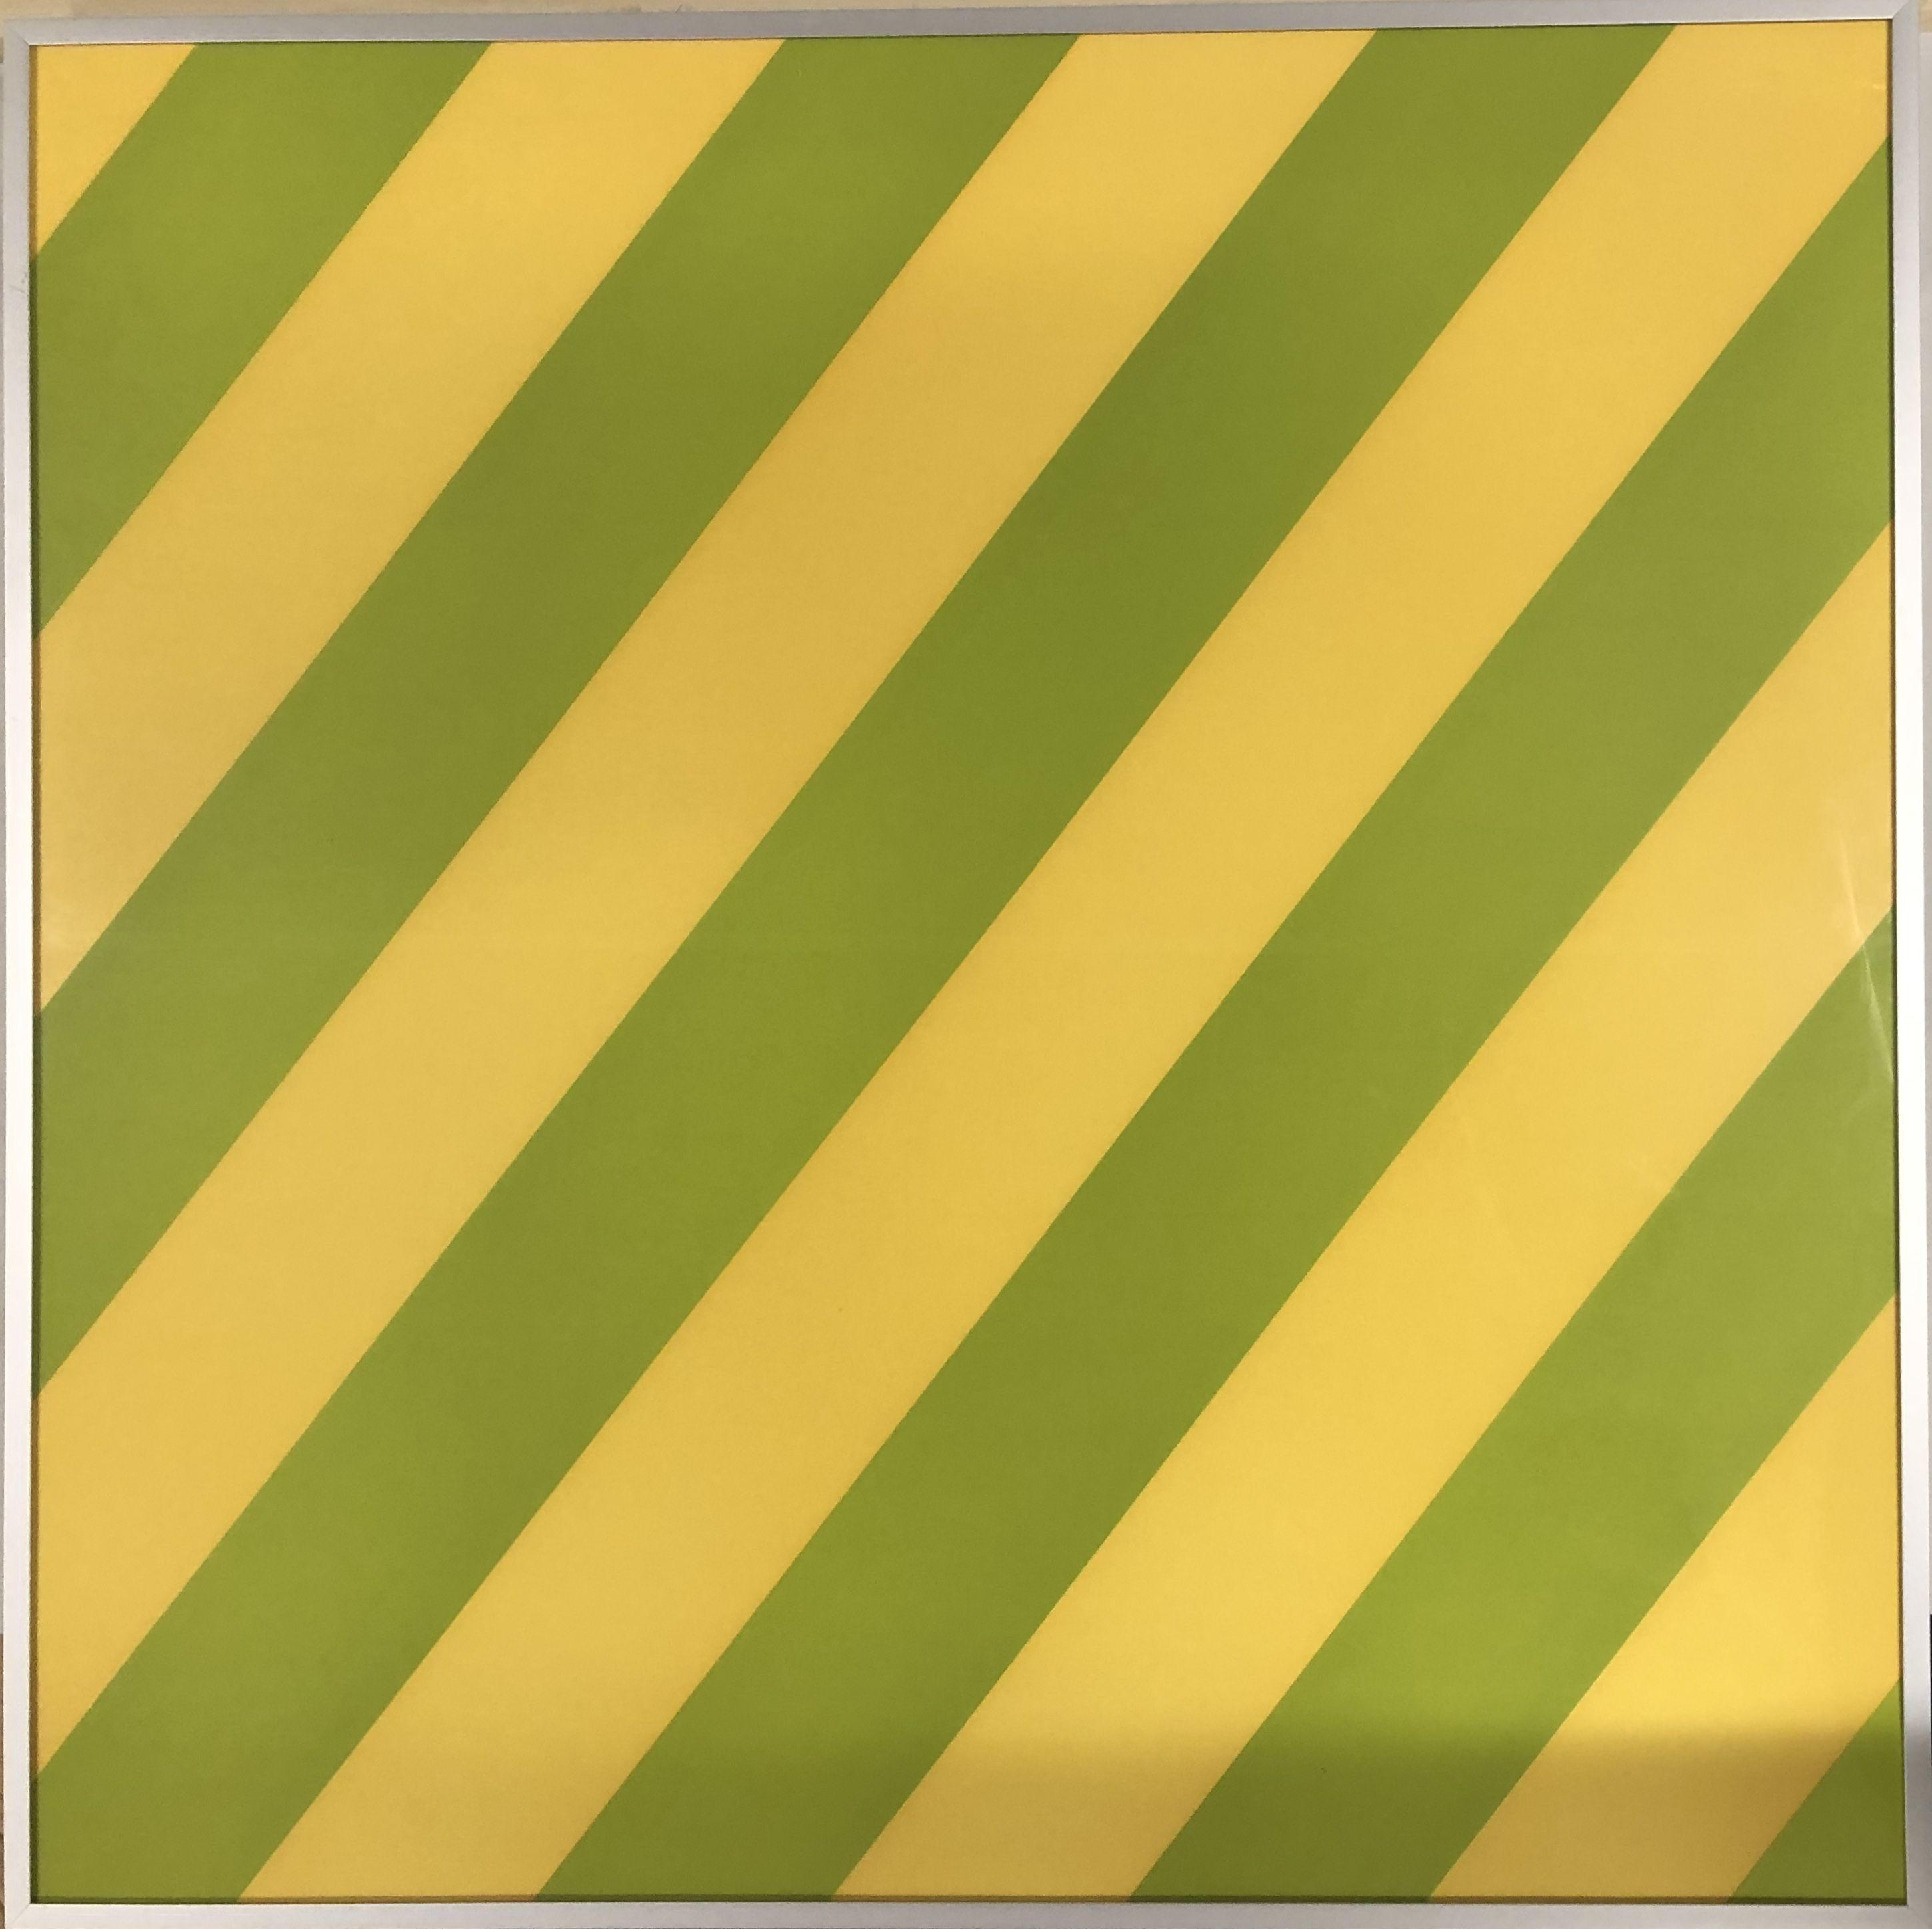 Olivier Mosset - Composition Yellow / Green, 2003